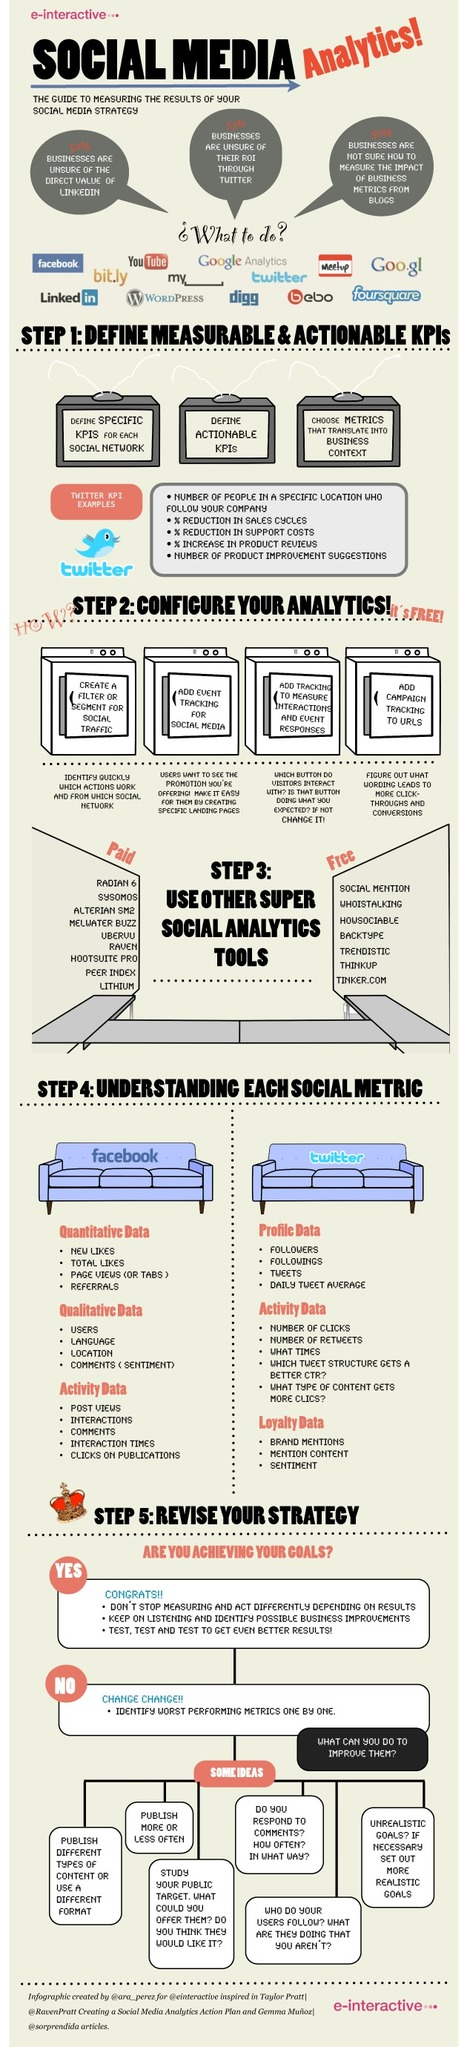 Measure Your Social Media Strategy with this Great Guide [Infographic] | Education Tech & Tools | Scoop.it